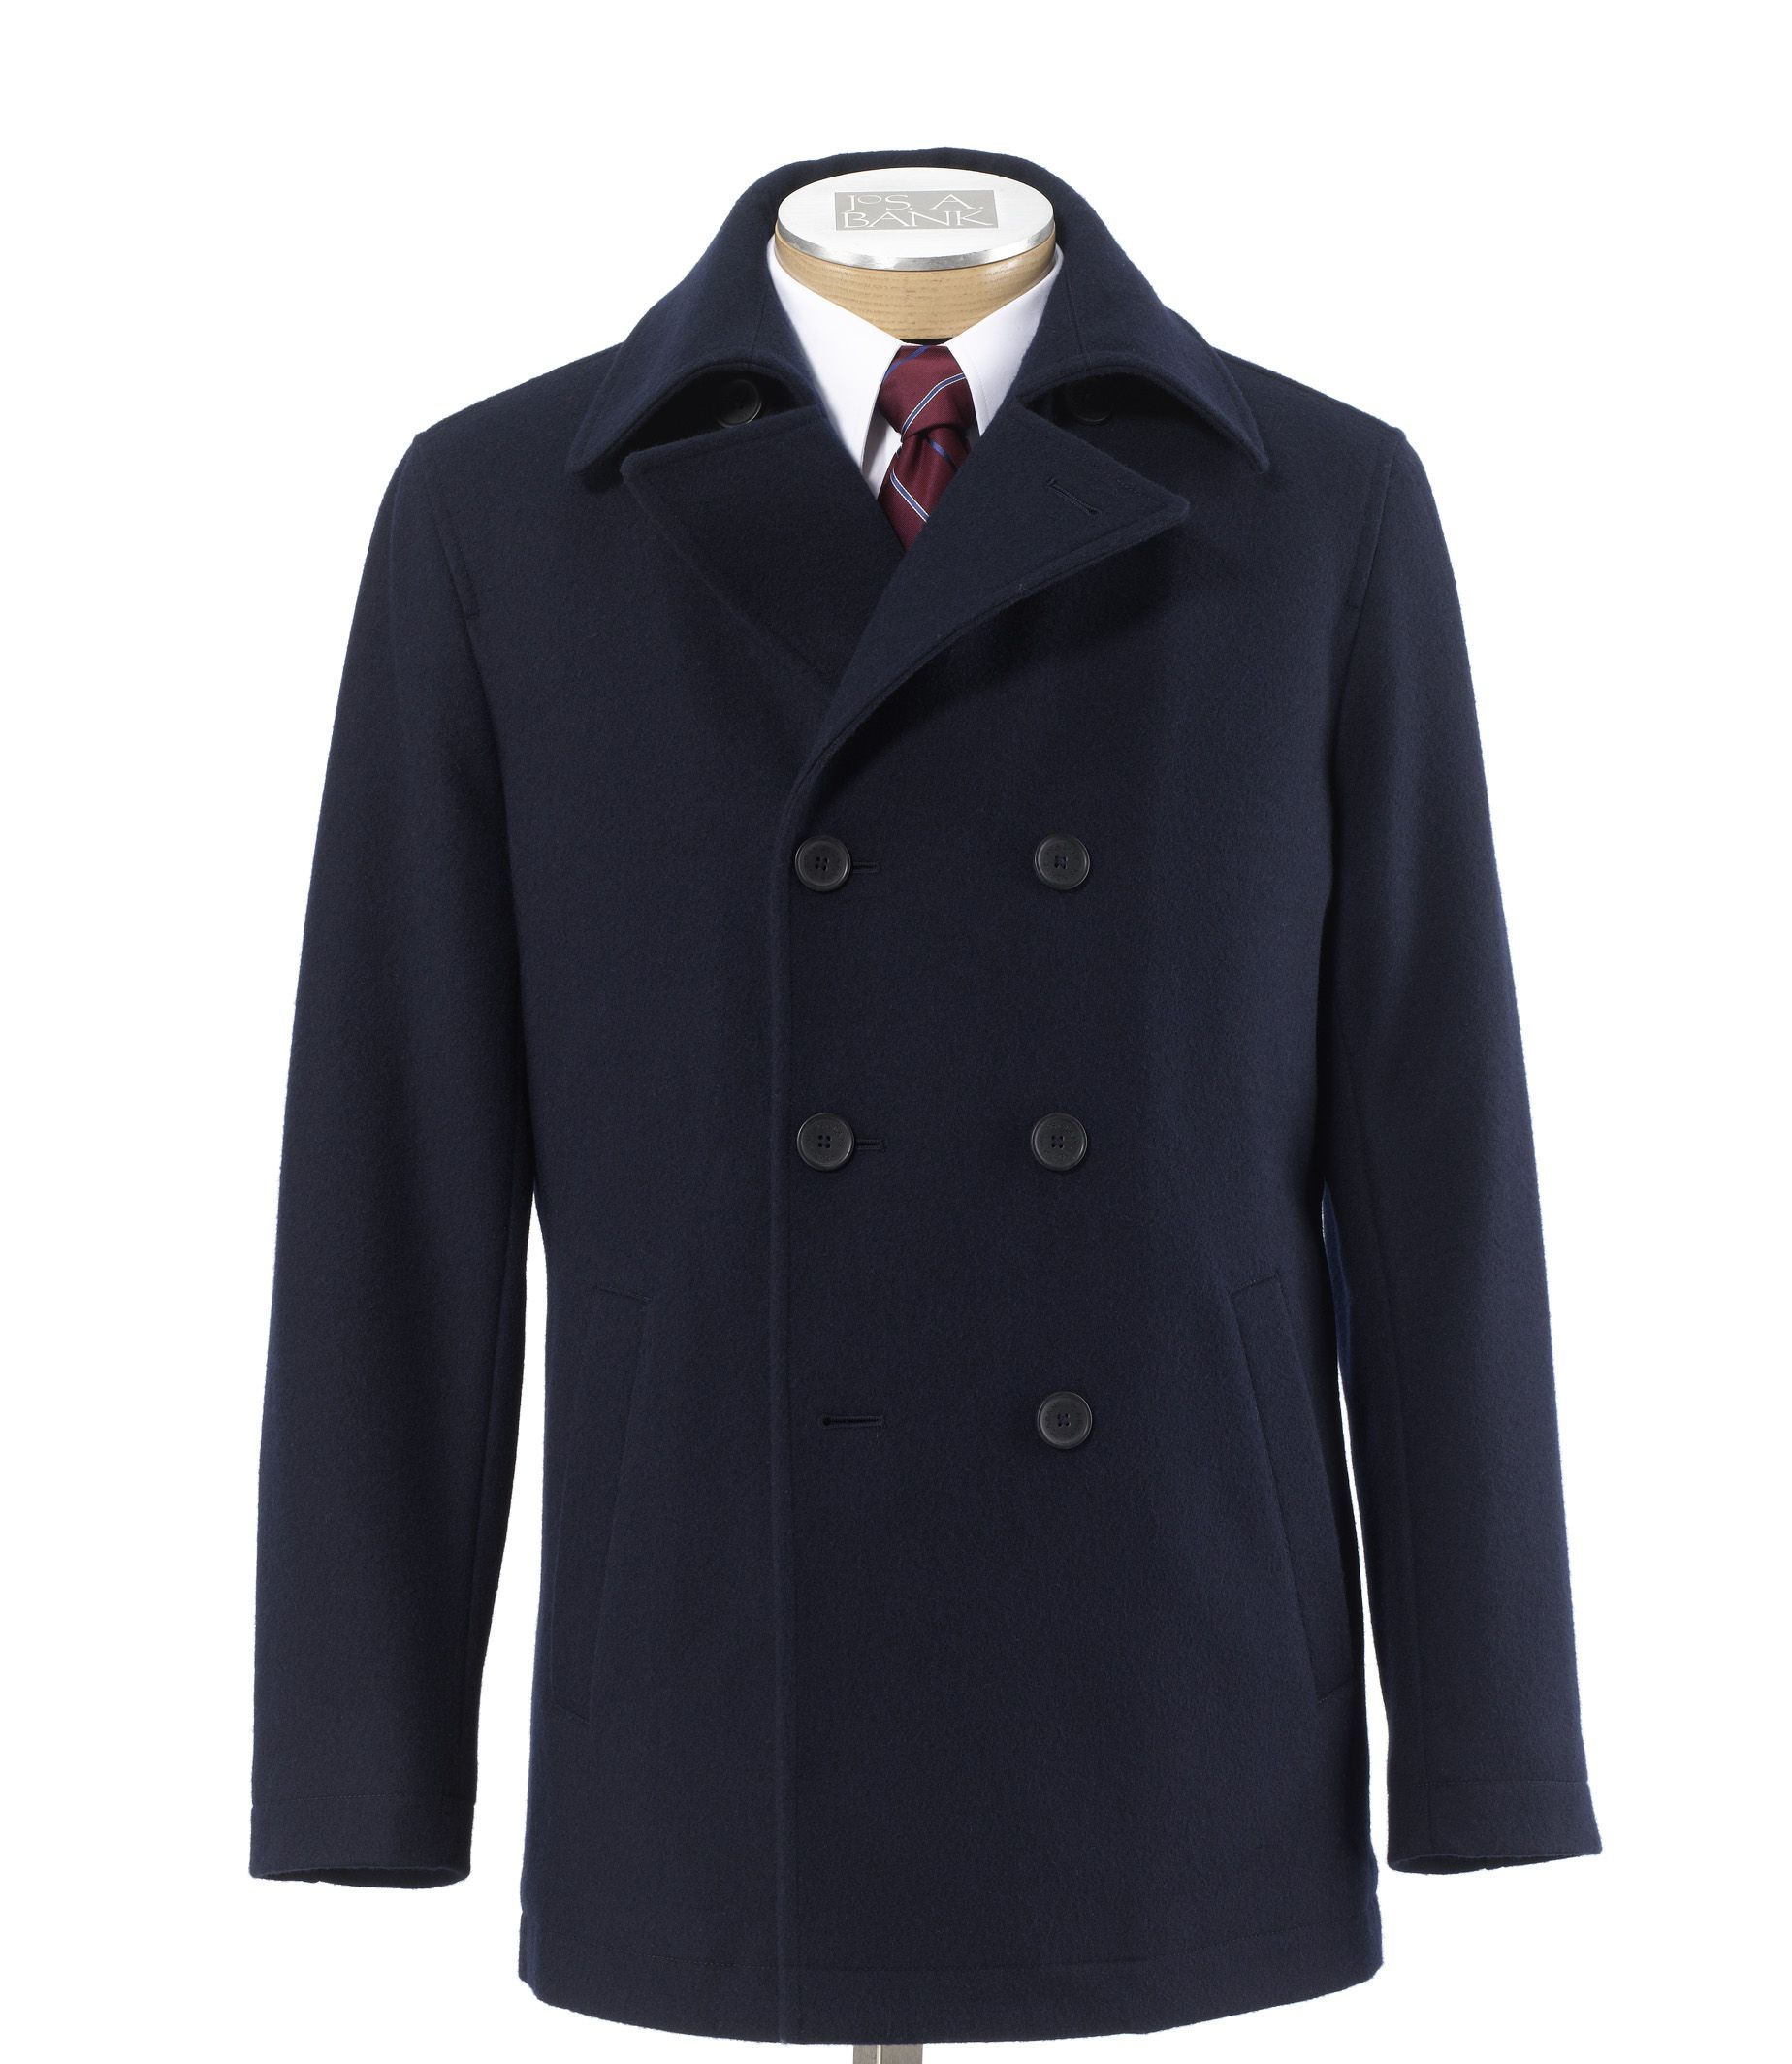 Jos a bank men 39 s factory store peacoat jacket for Jos a bank shirt review